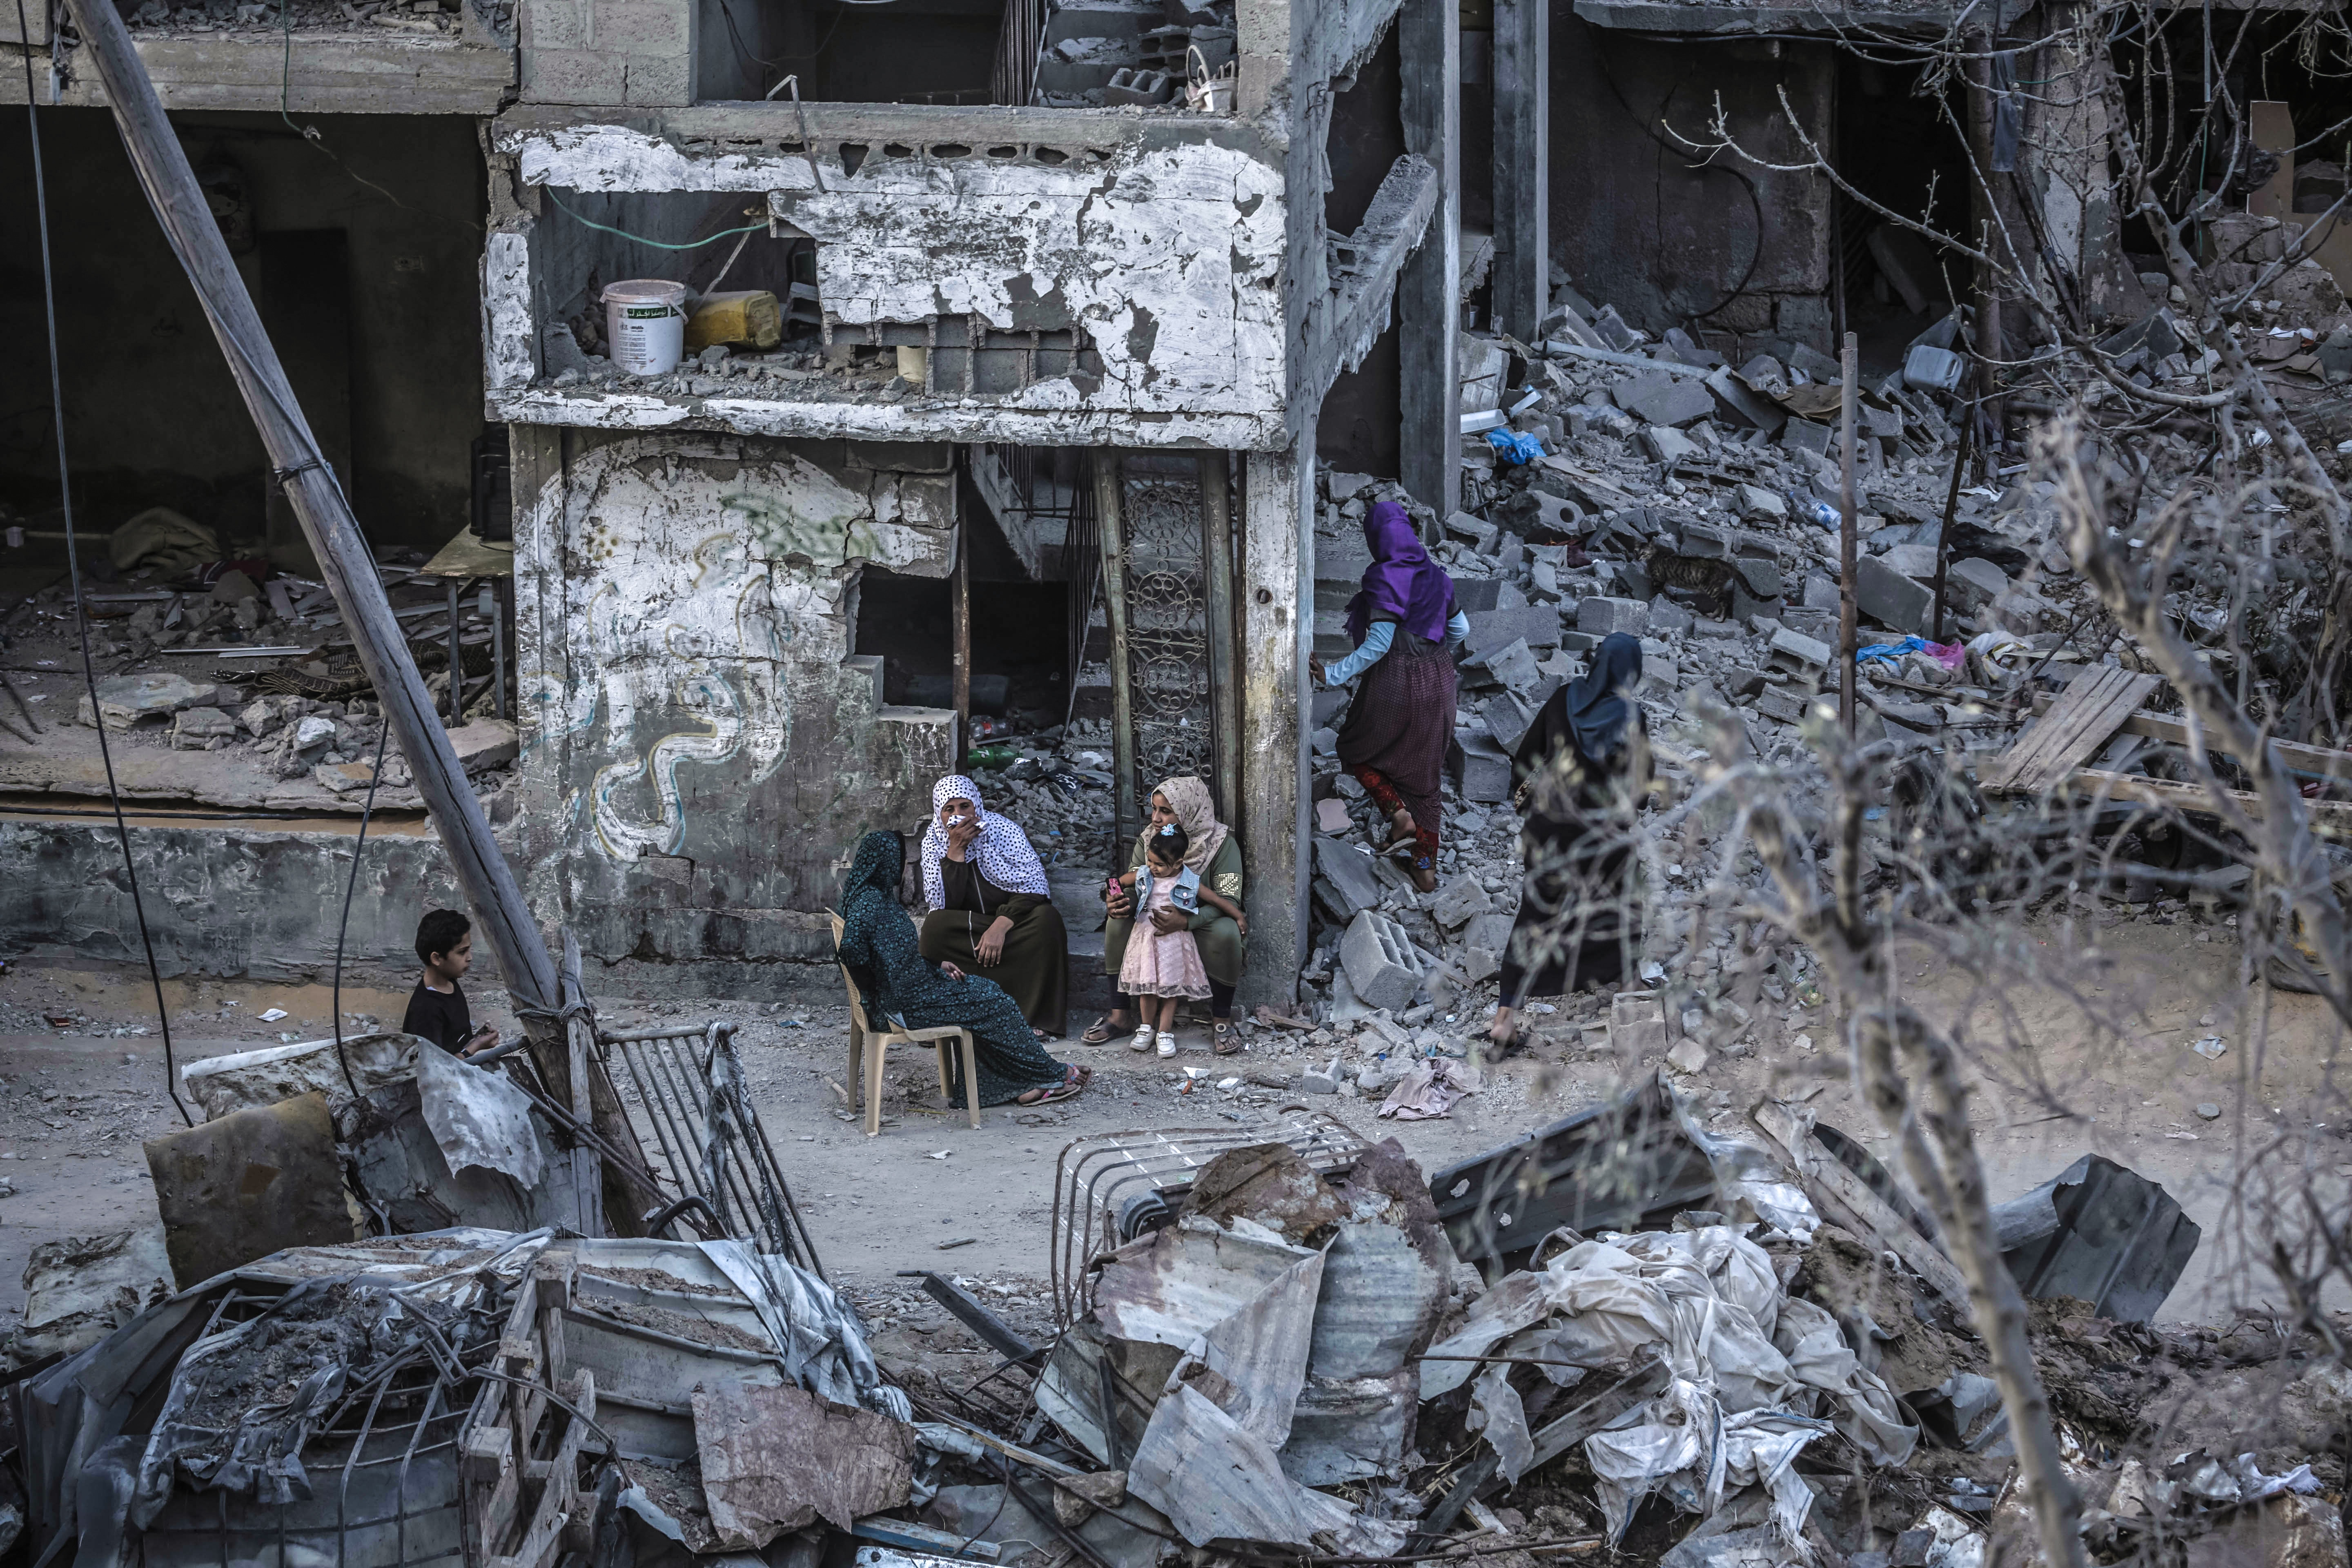 GAZA CITY, GAZA - MAY 22: Palestinians sit amongst the rubble of their destroyed houses after a ceasefire between Israel and Gaza fighters, in Beit Hanun, northern Gaza Strip, on May 22, 2021 in Gaza City, Gaza. The ceasefire between Israel and Hamas appeared to be holding, despite fresh clashes at Al-Aqsa Mosque in East Jerusalem. The ceasefire brings to an end eleven days of fighting which killed more than 250 Palestinians, many of them women and children, and 13 Israelis. The conflict began on May 10th after rising tensions in East Jerusalem and clashes at the Al Aqsa Mosque compound. (Photo by Fatima Shbair/Getty Images)